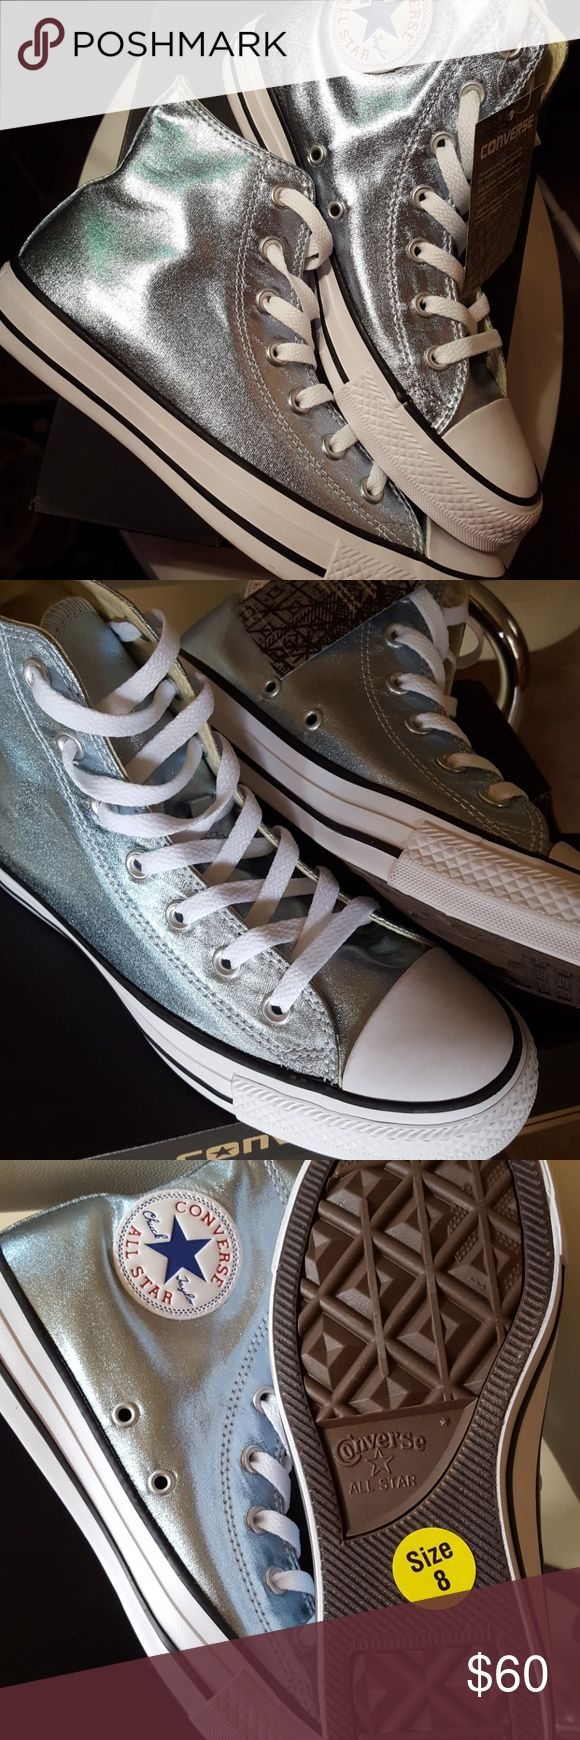 "Light Blue/Silver Metallic Converse These Converse are Amazing! ""BRAND NEW WITH TAGS""  SIZE 8 Women's. Perfect color for all year! So pretty in person  Converse Shoes Sneakers"